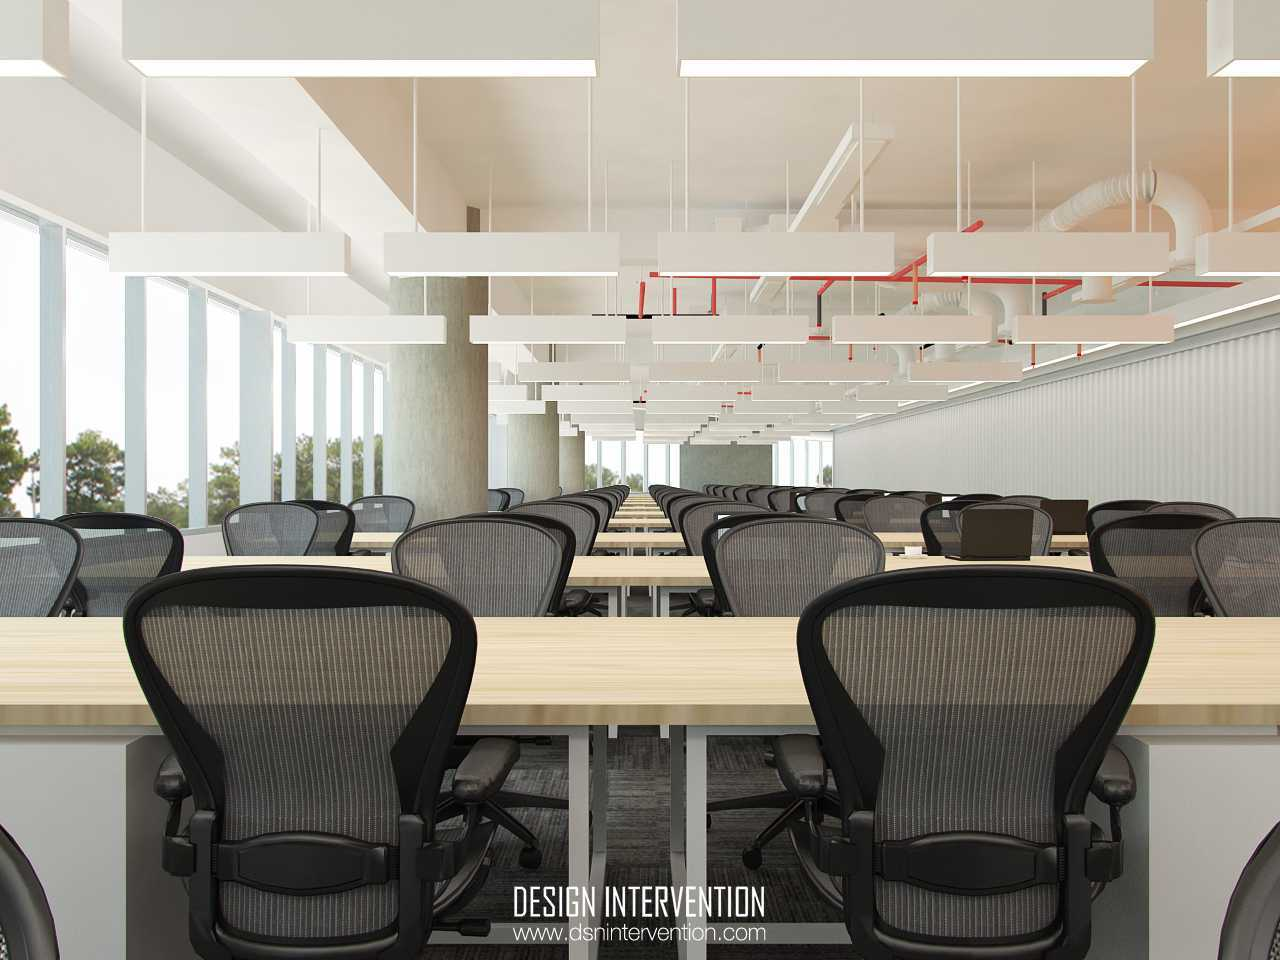 Design Intervention B - Office Concept Bsd Office Park Bsd Office Park Workspace  13971